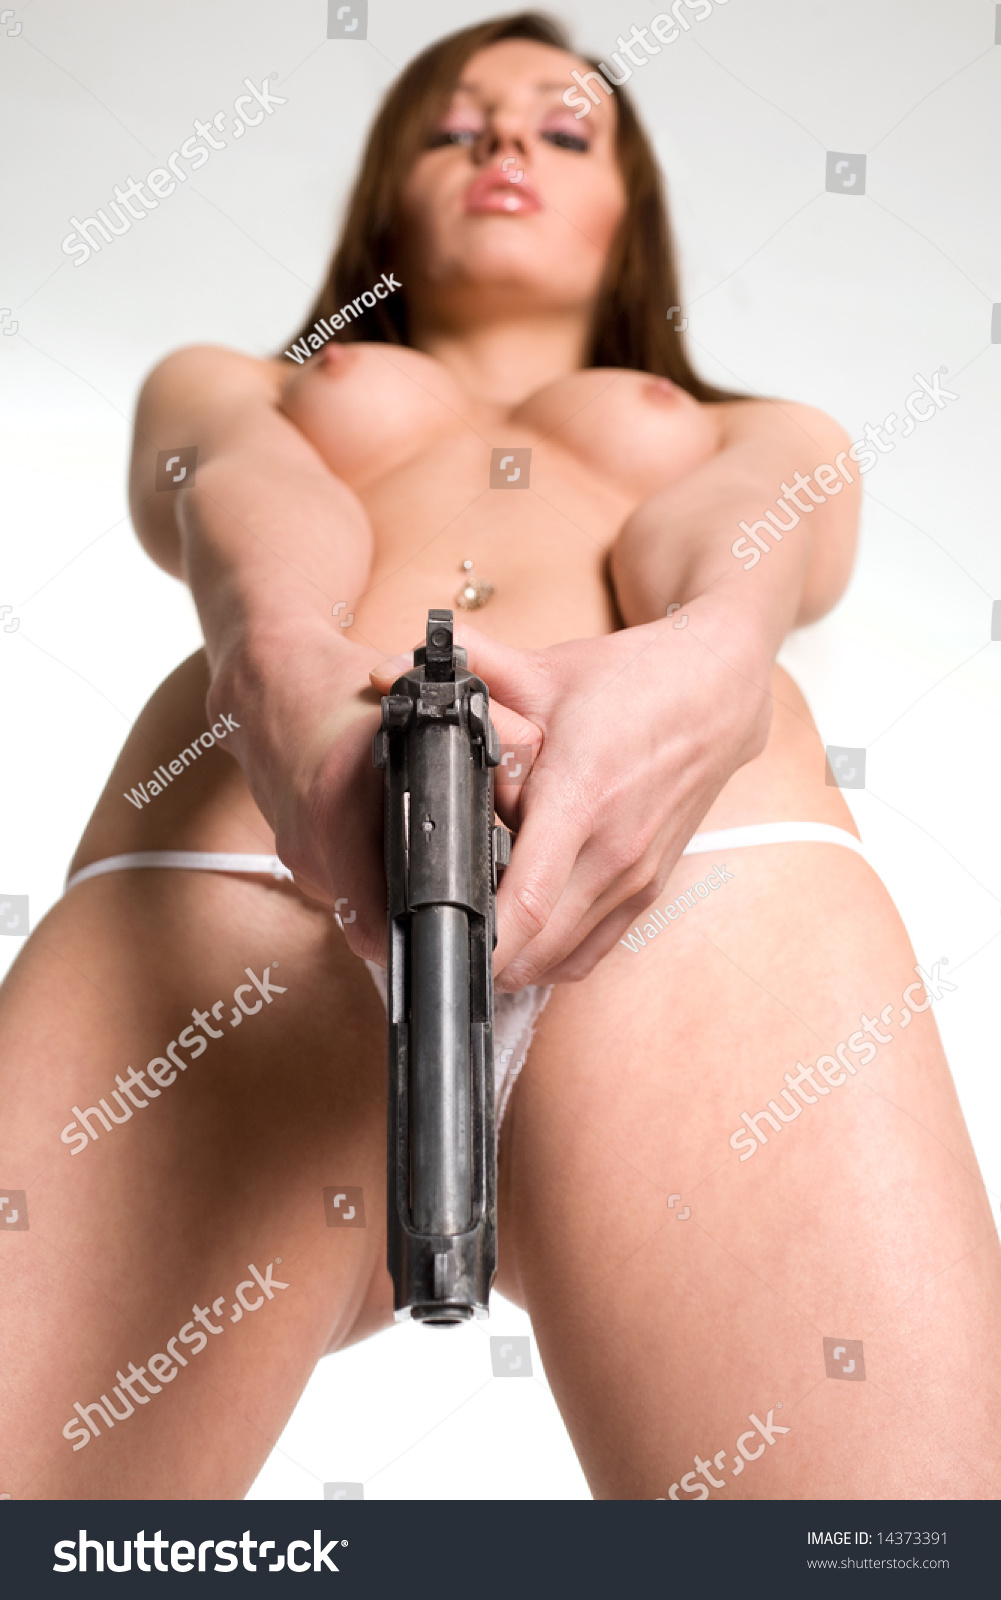 Sexy Naked Woman Gun Stock Photo 14373391 - Shutterstock-7290